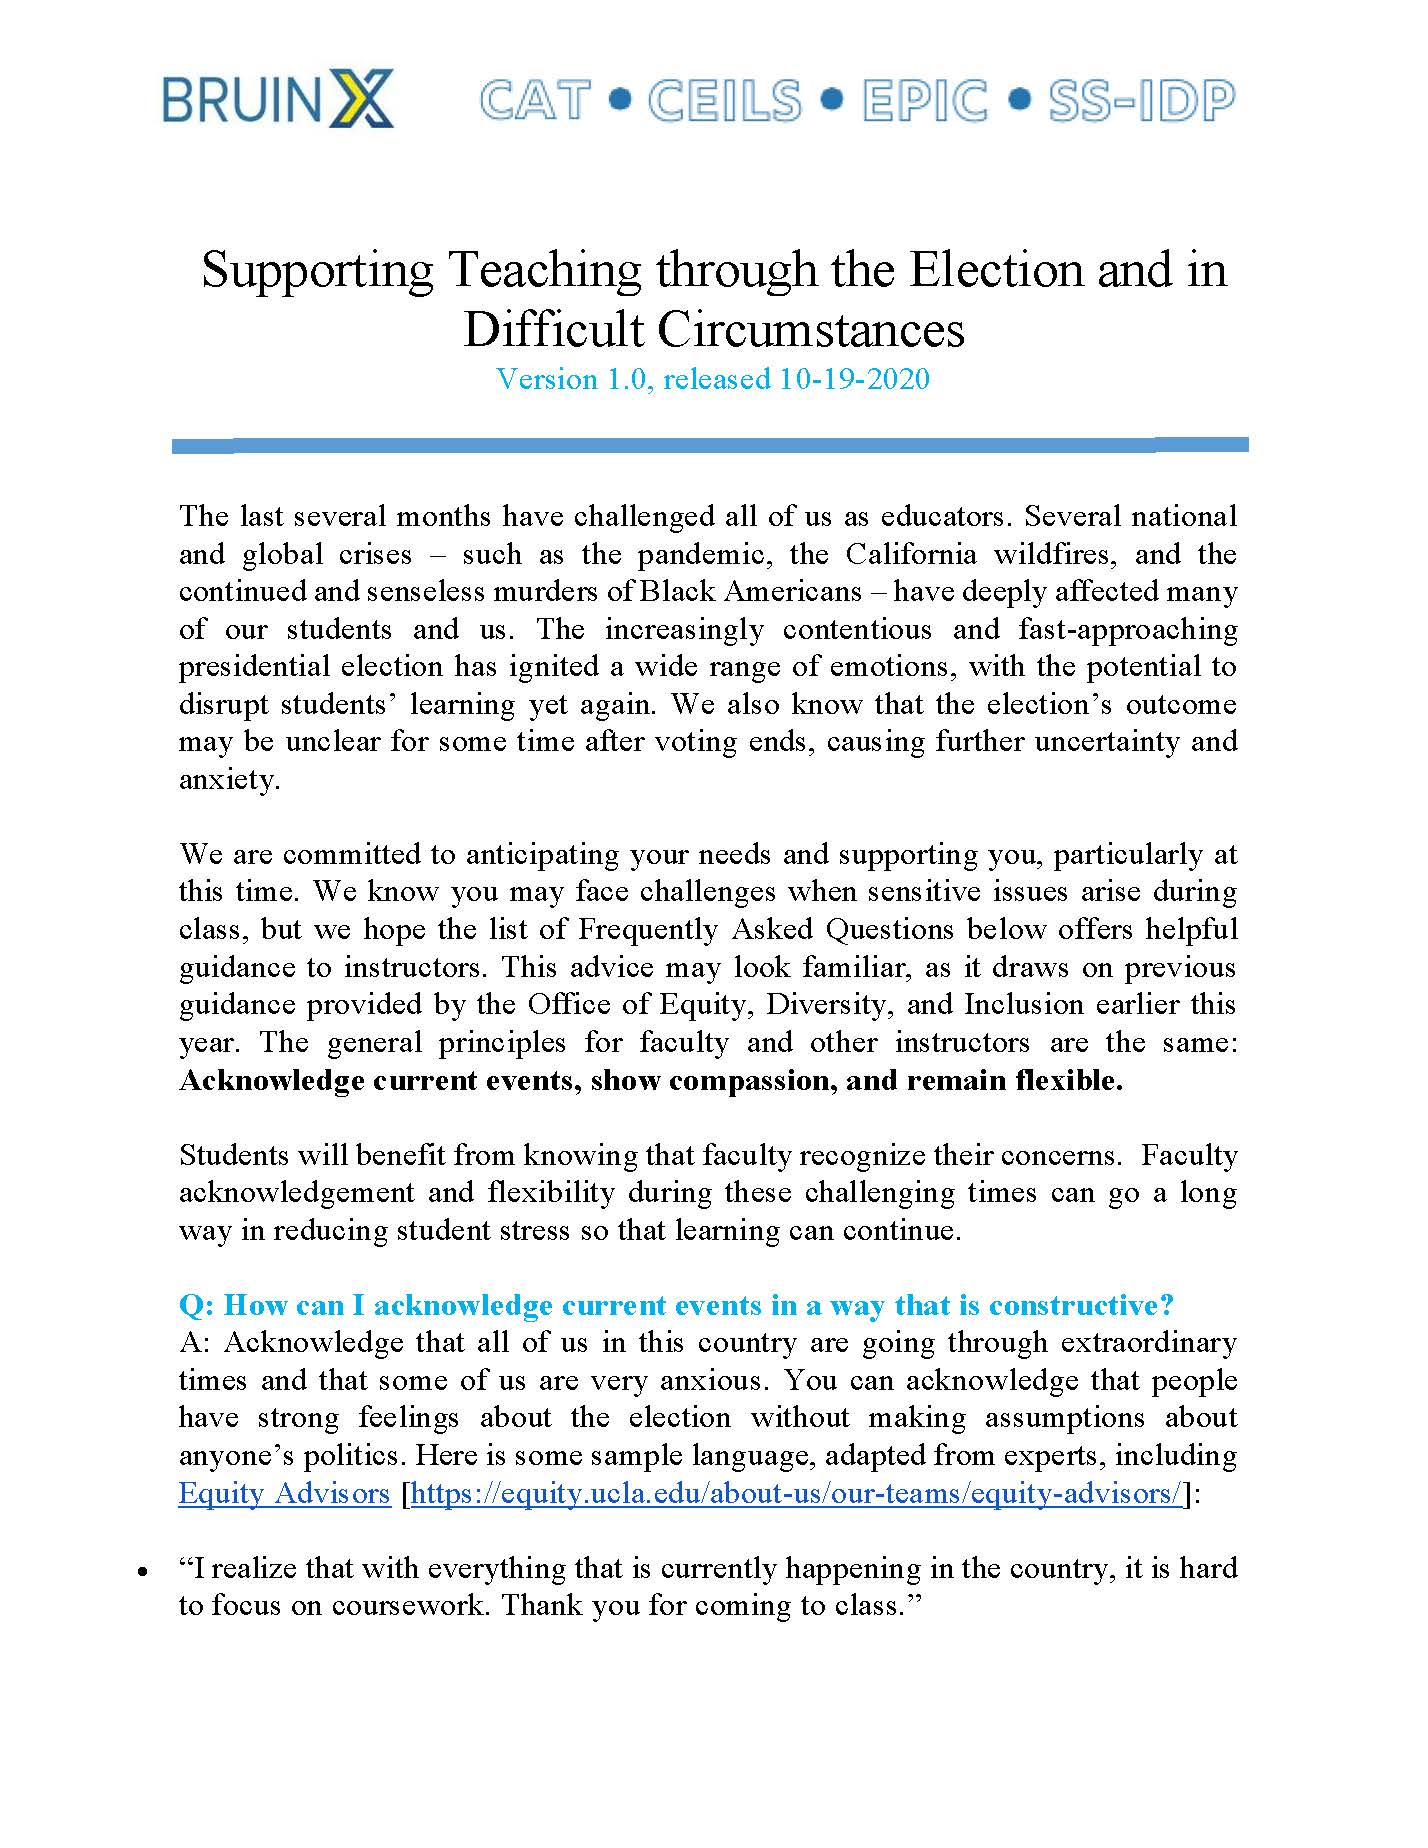 Guidance on Teaching During the Election